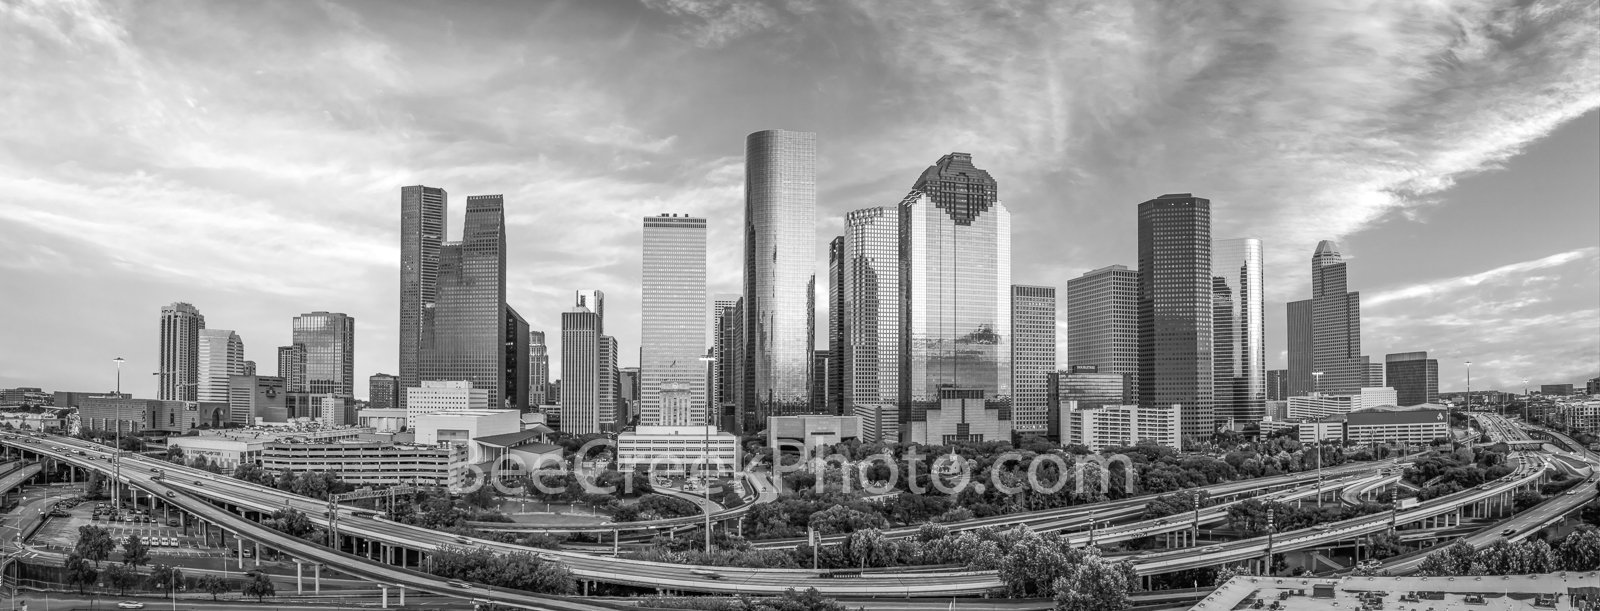 Houston, skyline, aerial, black and white, bw, cityscape, clouds, low light, city, downtown, skyscrapers, buildings, high rise, IH45, museum district, art, culture, music, population, drone, urban, US, photo